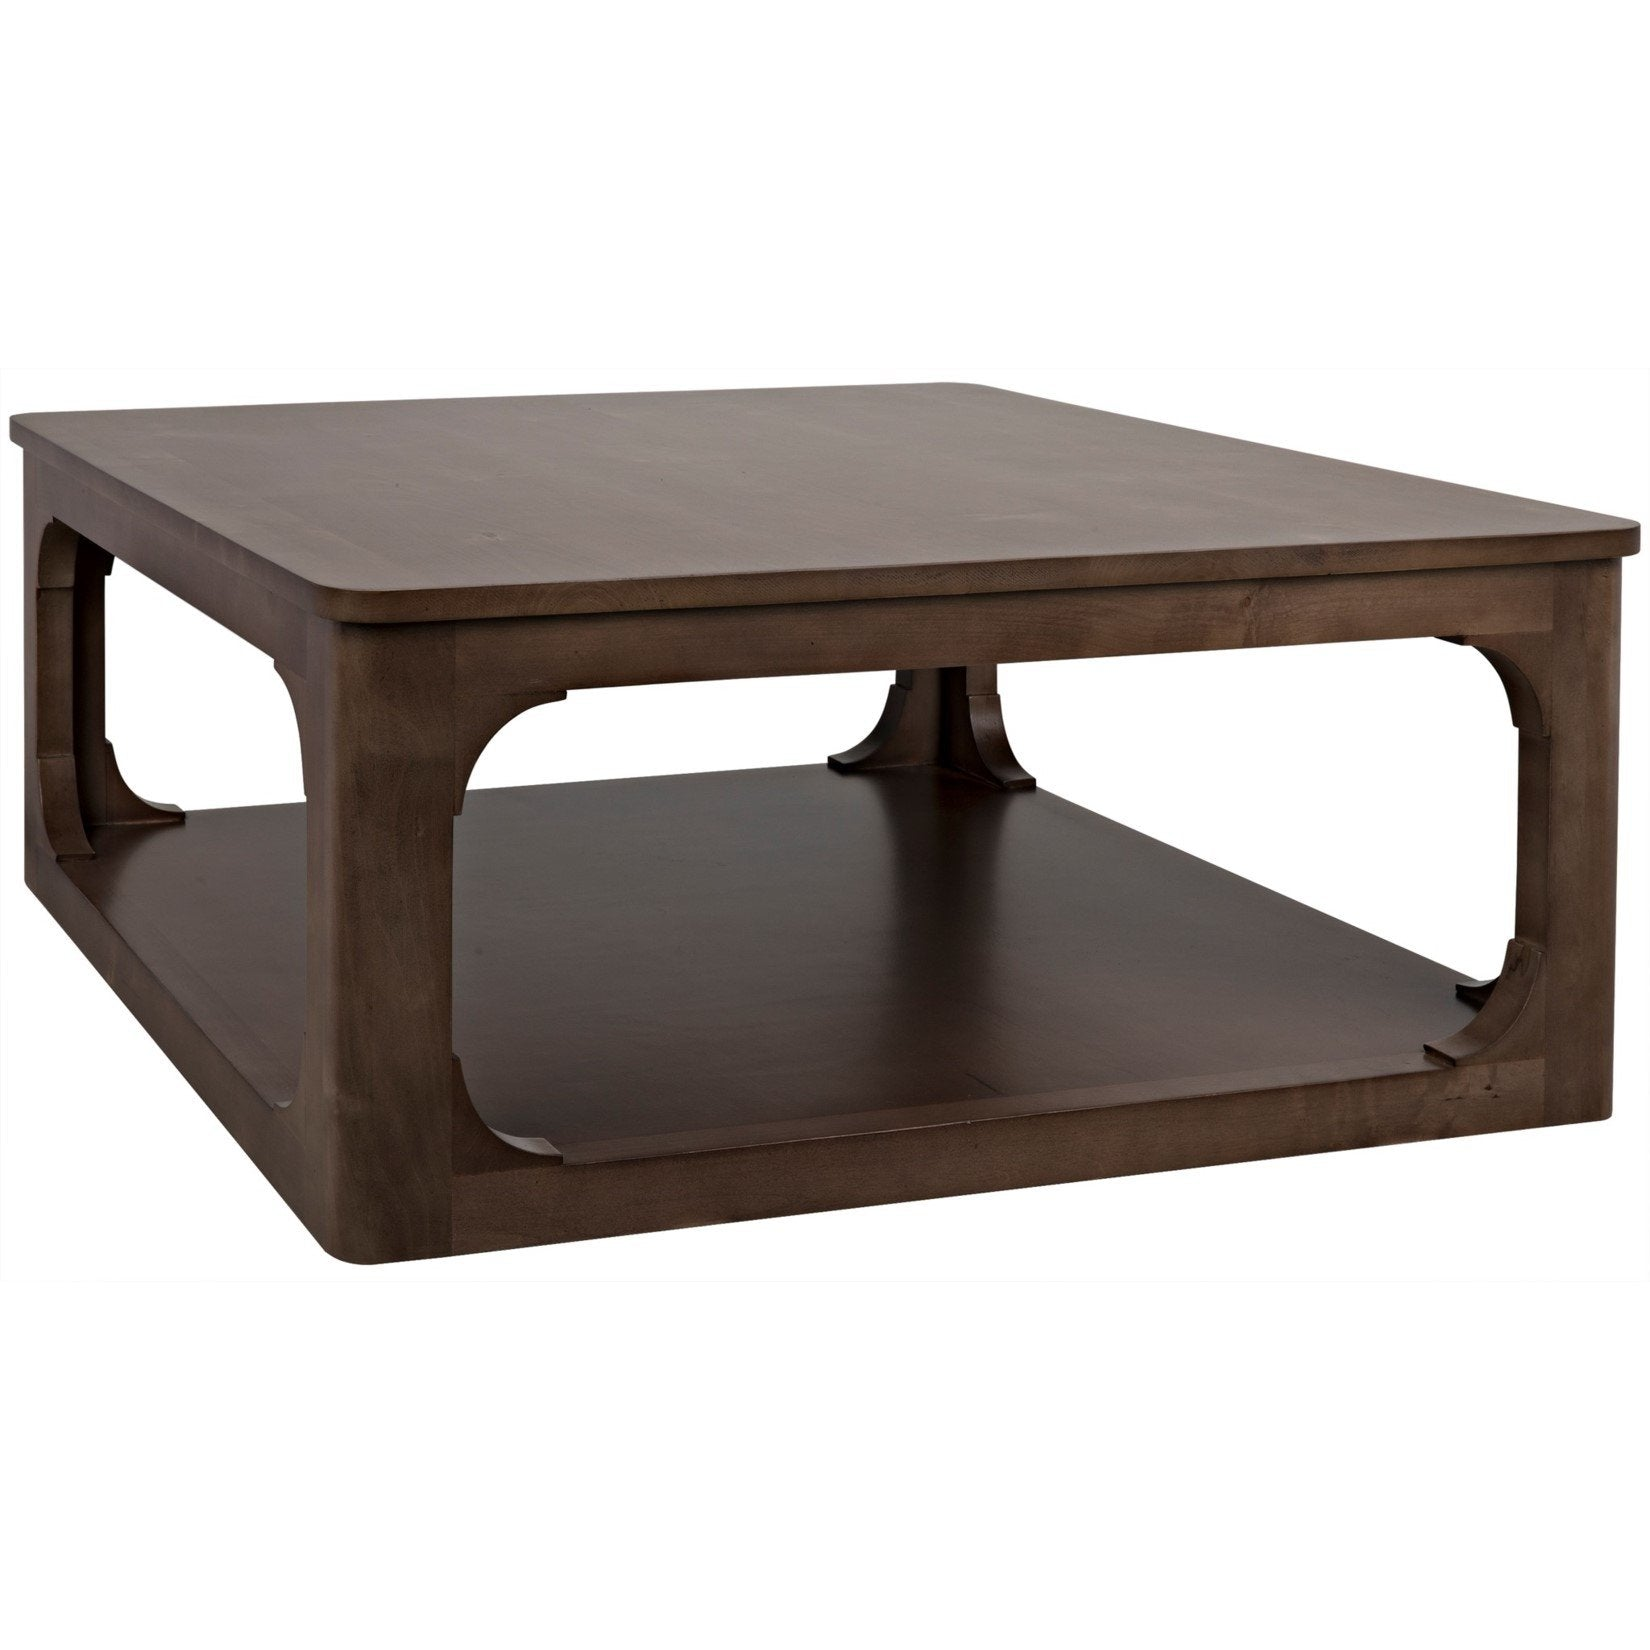 CFC Furniture Gimso Coffee Table, Square